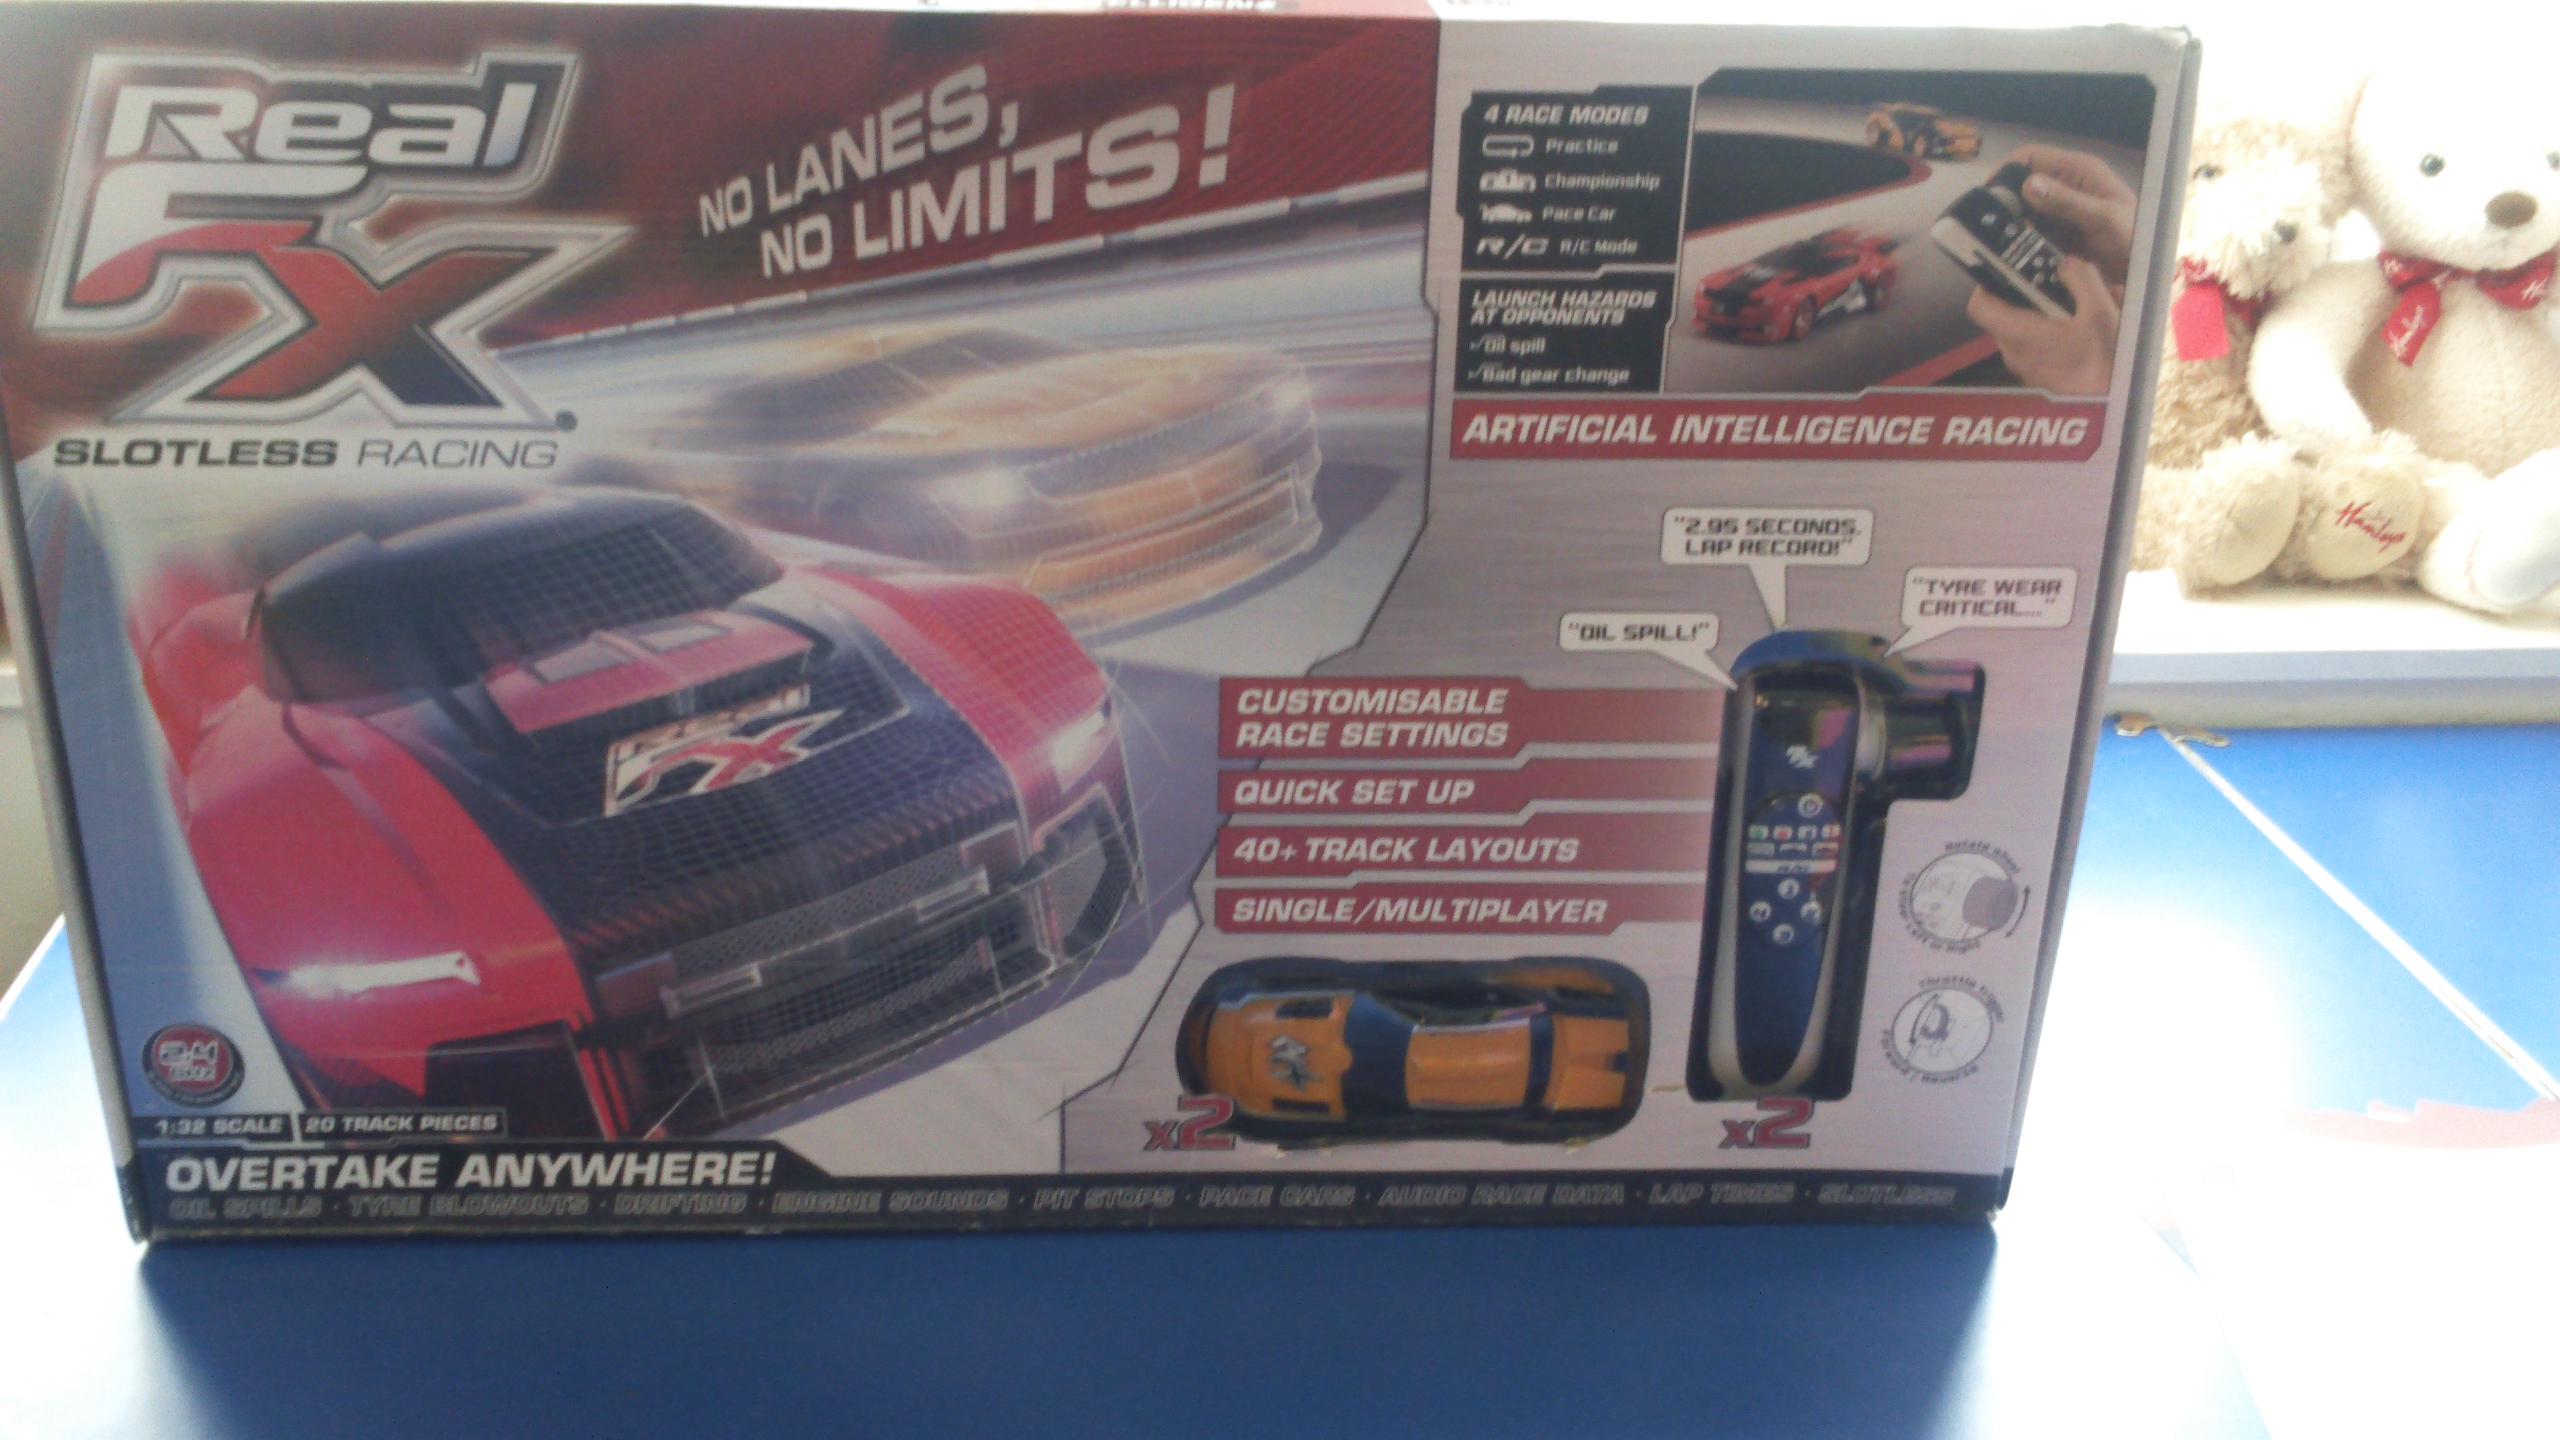 Real FX Slotless Racing Box